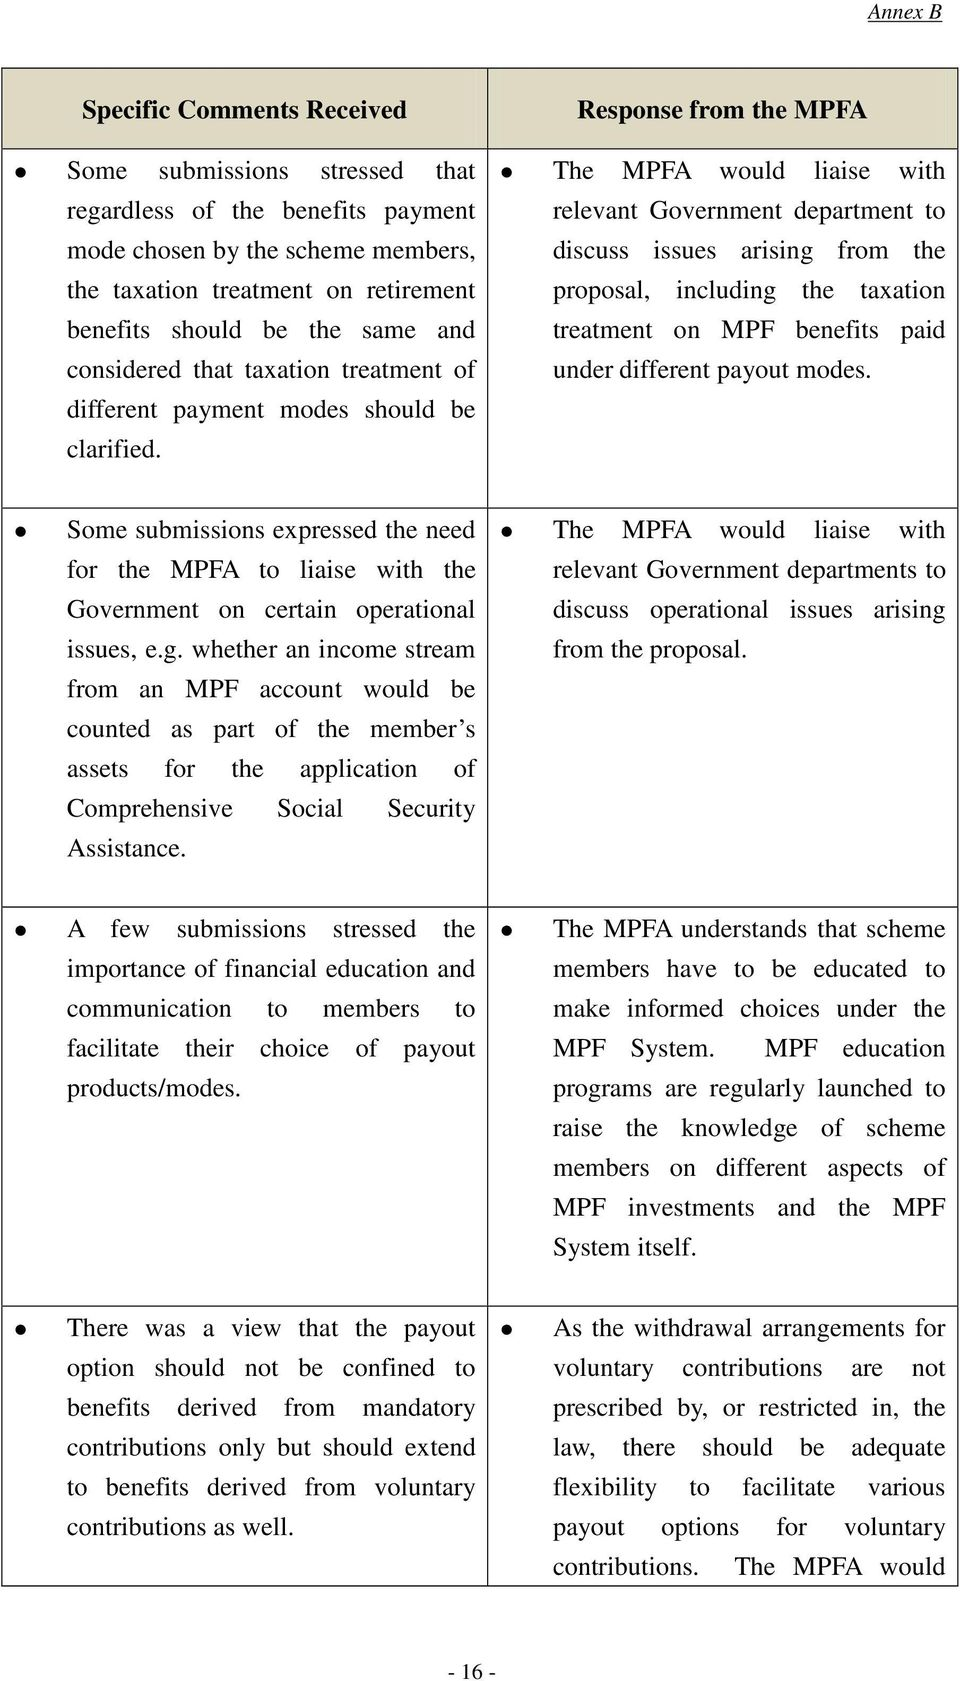 Response from the MPFA The MPFA would liaise with relevant Government department to discuss issues arising from the proposal, including the taxation treatment on MPF benefits paid under different